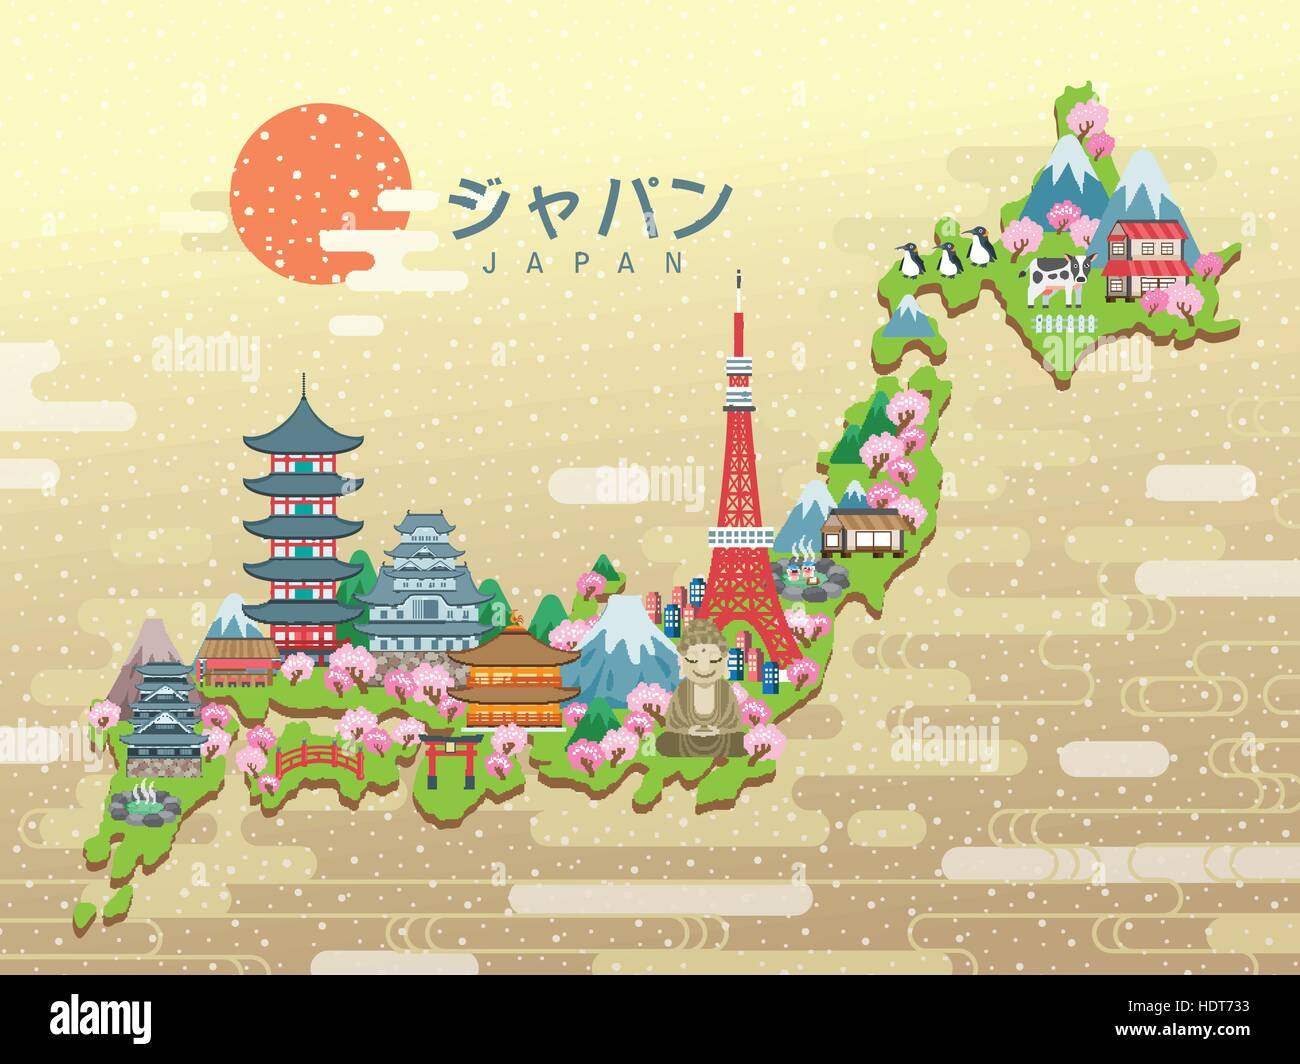 Lovely Japan Travel Map Japan In Japanese Words On The Middle - Japan map cartoon